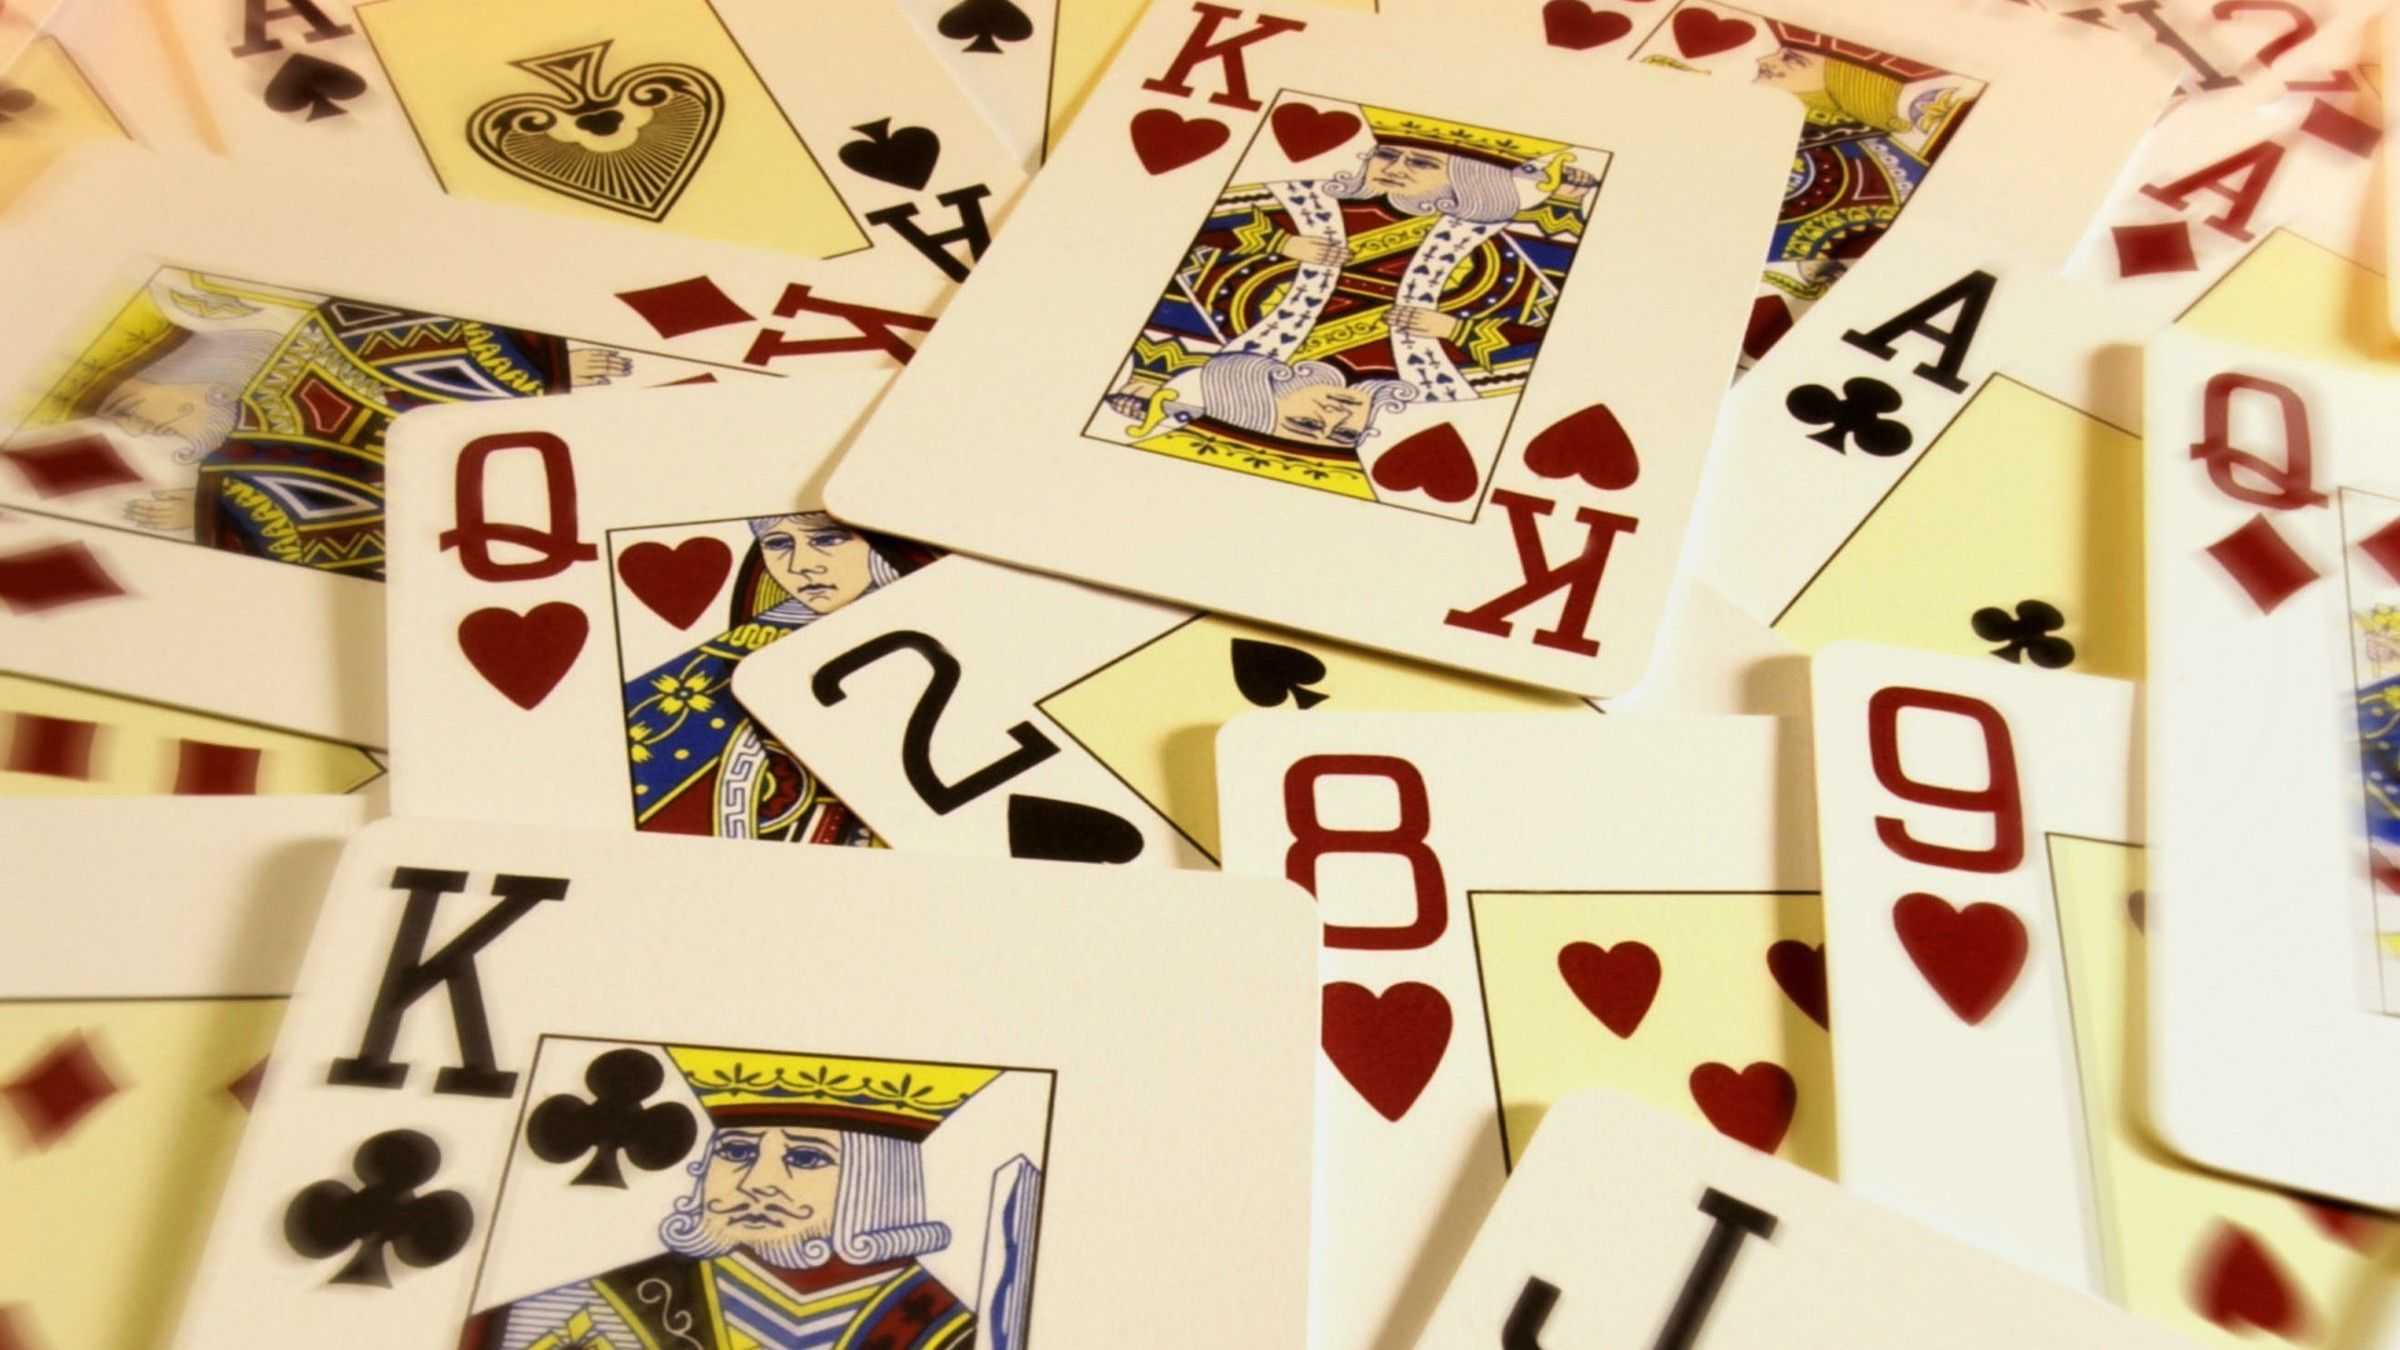 Card Poker Hd Wallpapers | Poker cards, Playing card deck, Rummy